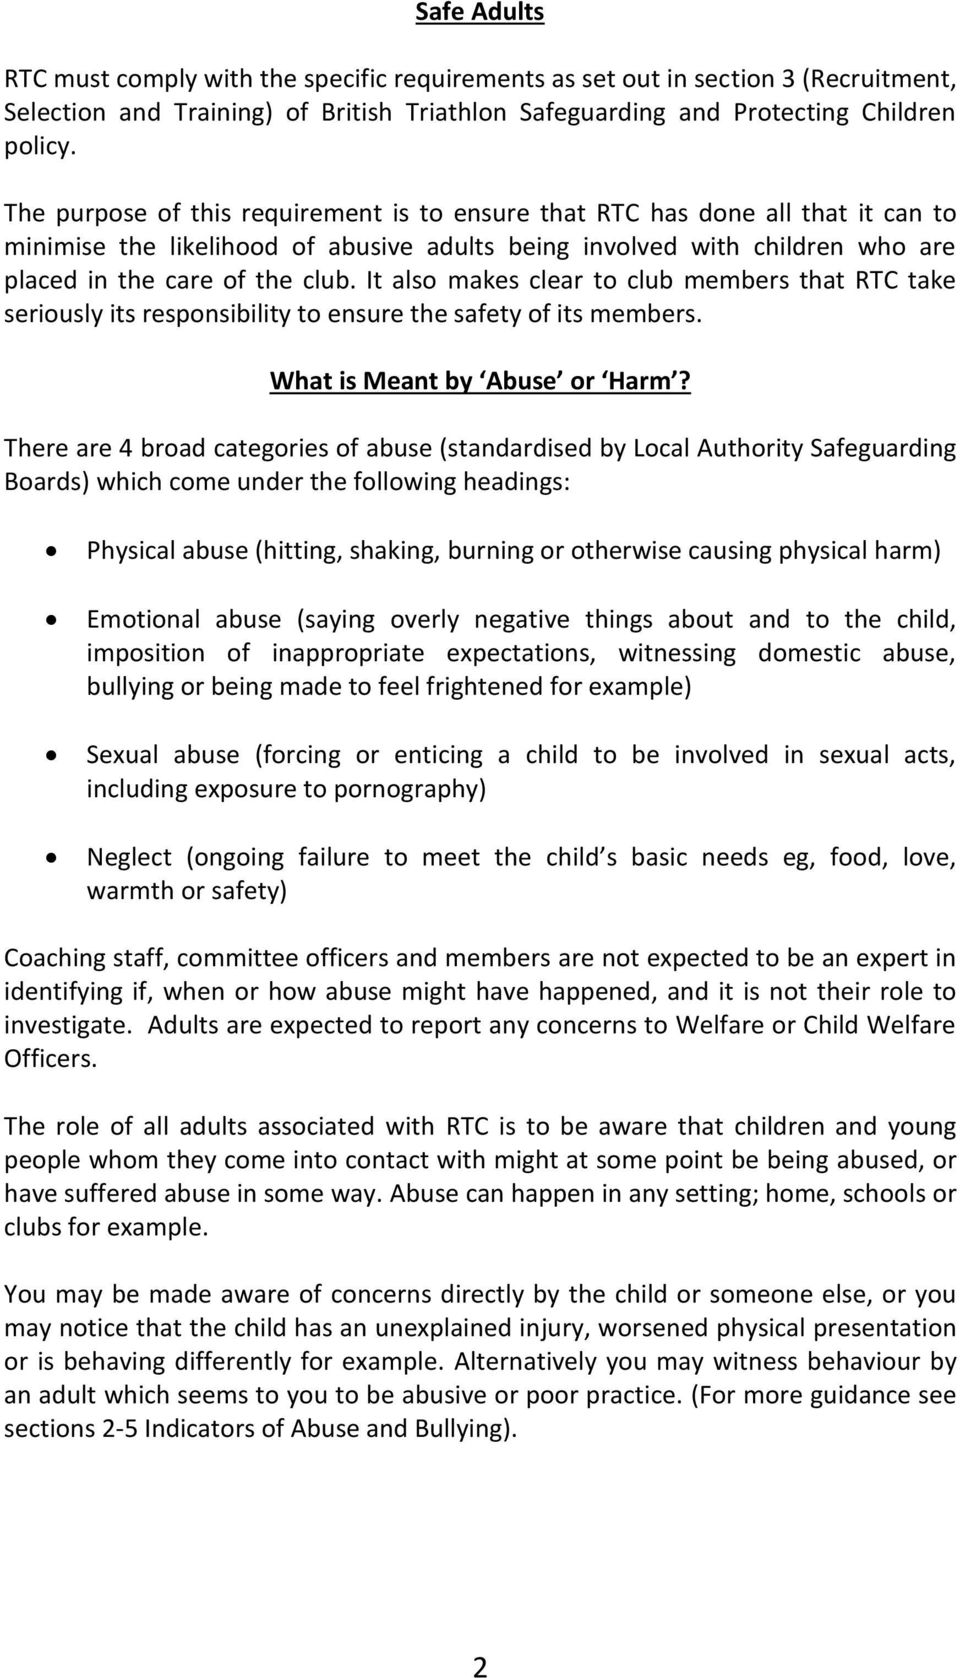 It also makes clear to club members that RTC take seriously its responsibility to ensure the safety of its members. What is Meant by Abuse or Harm?